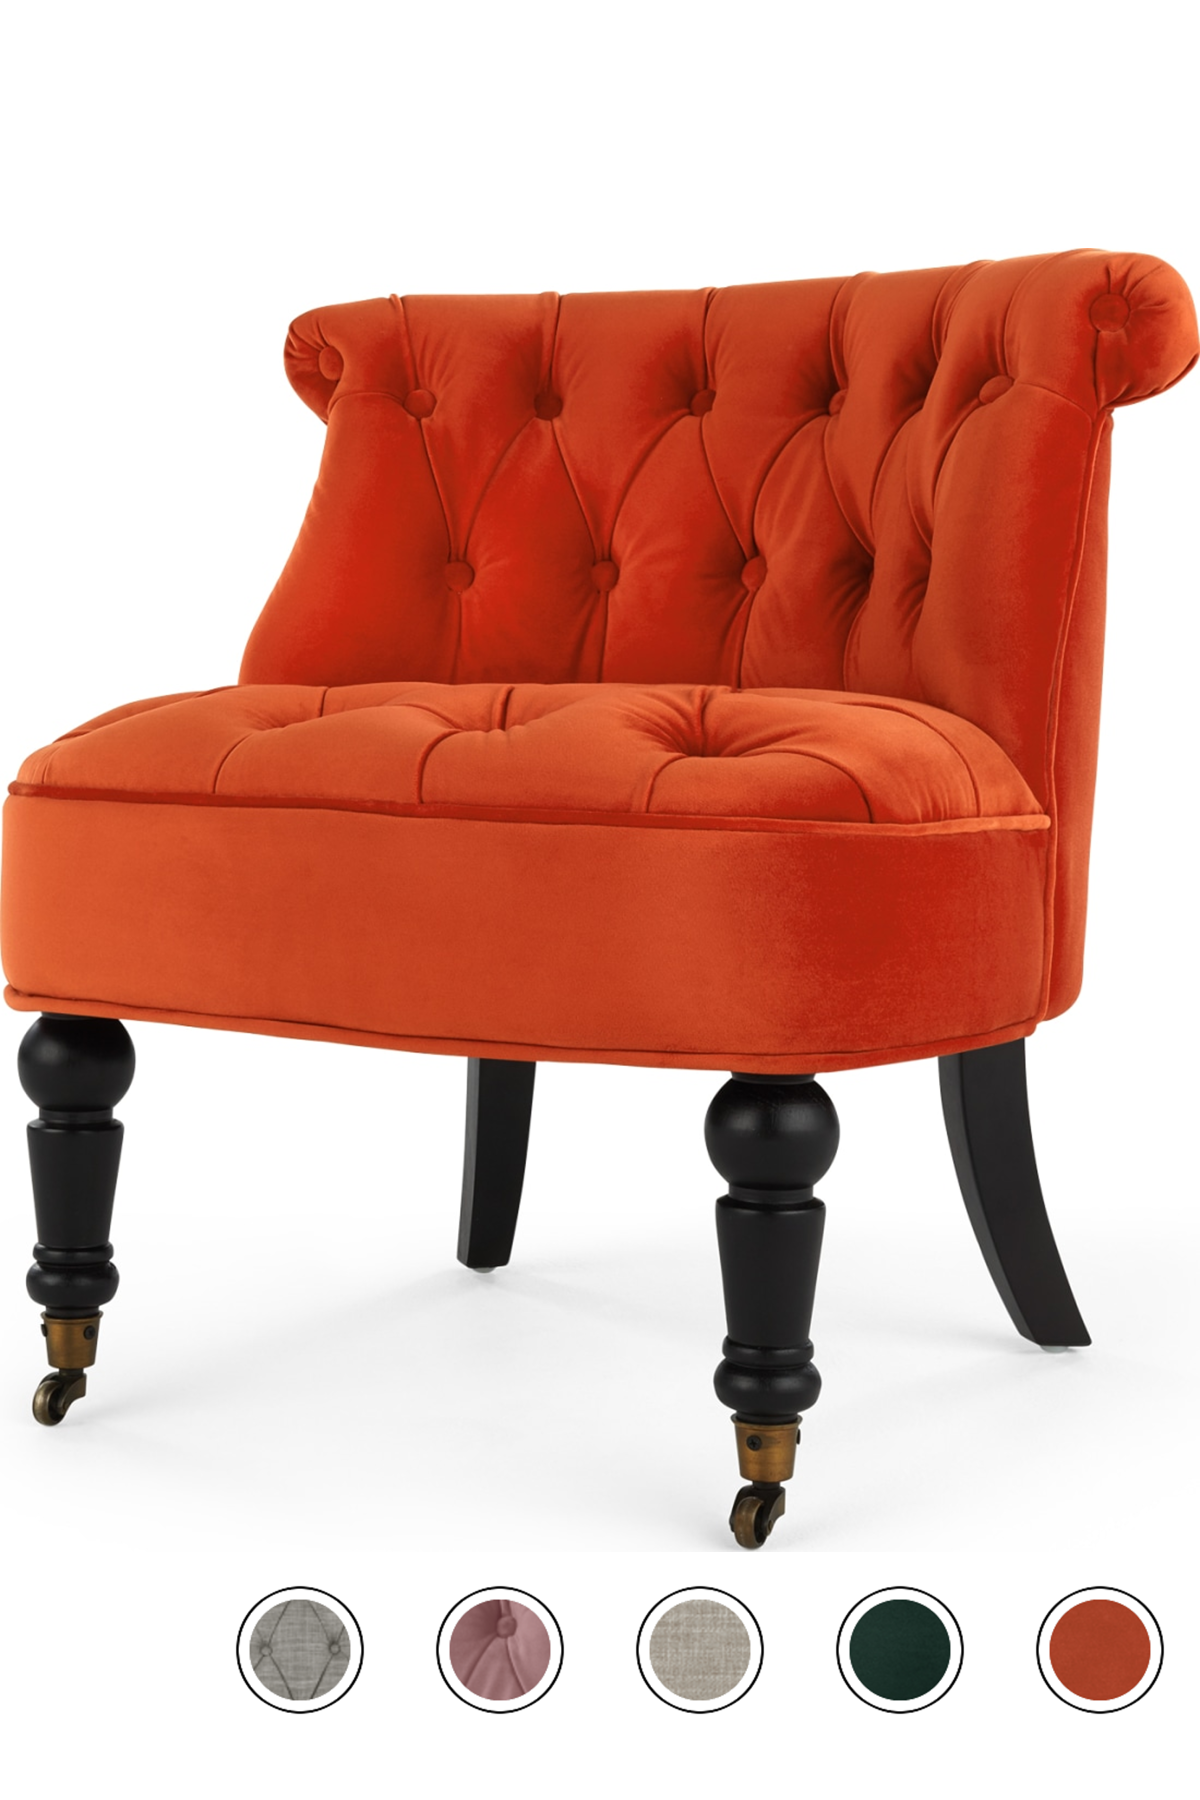 Best Made Flame Orange Velvet Armchair Accent Chairs Green 400 x 300